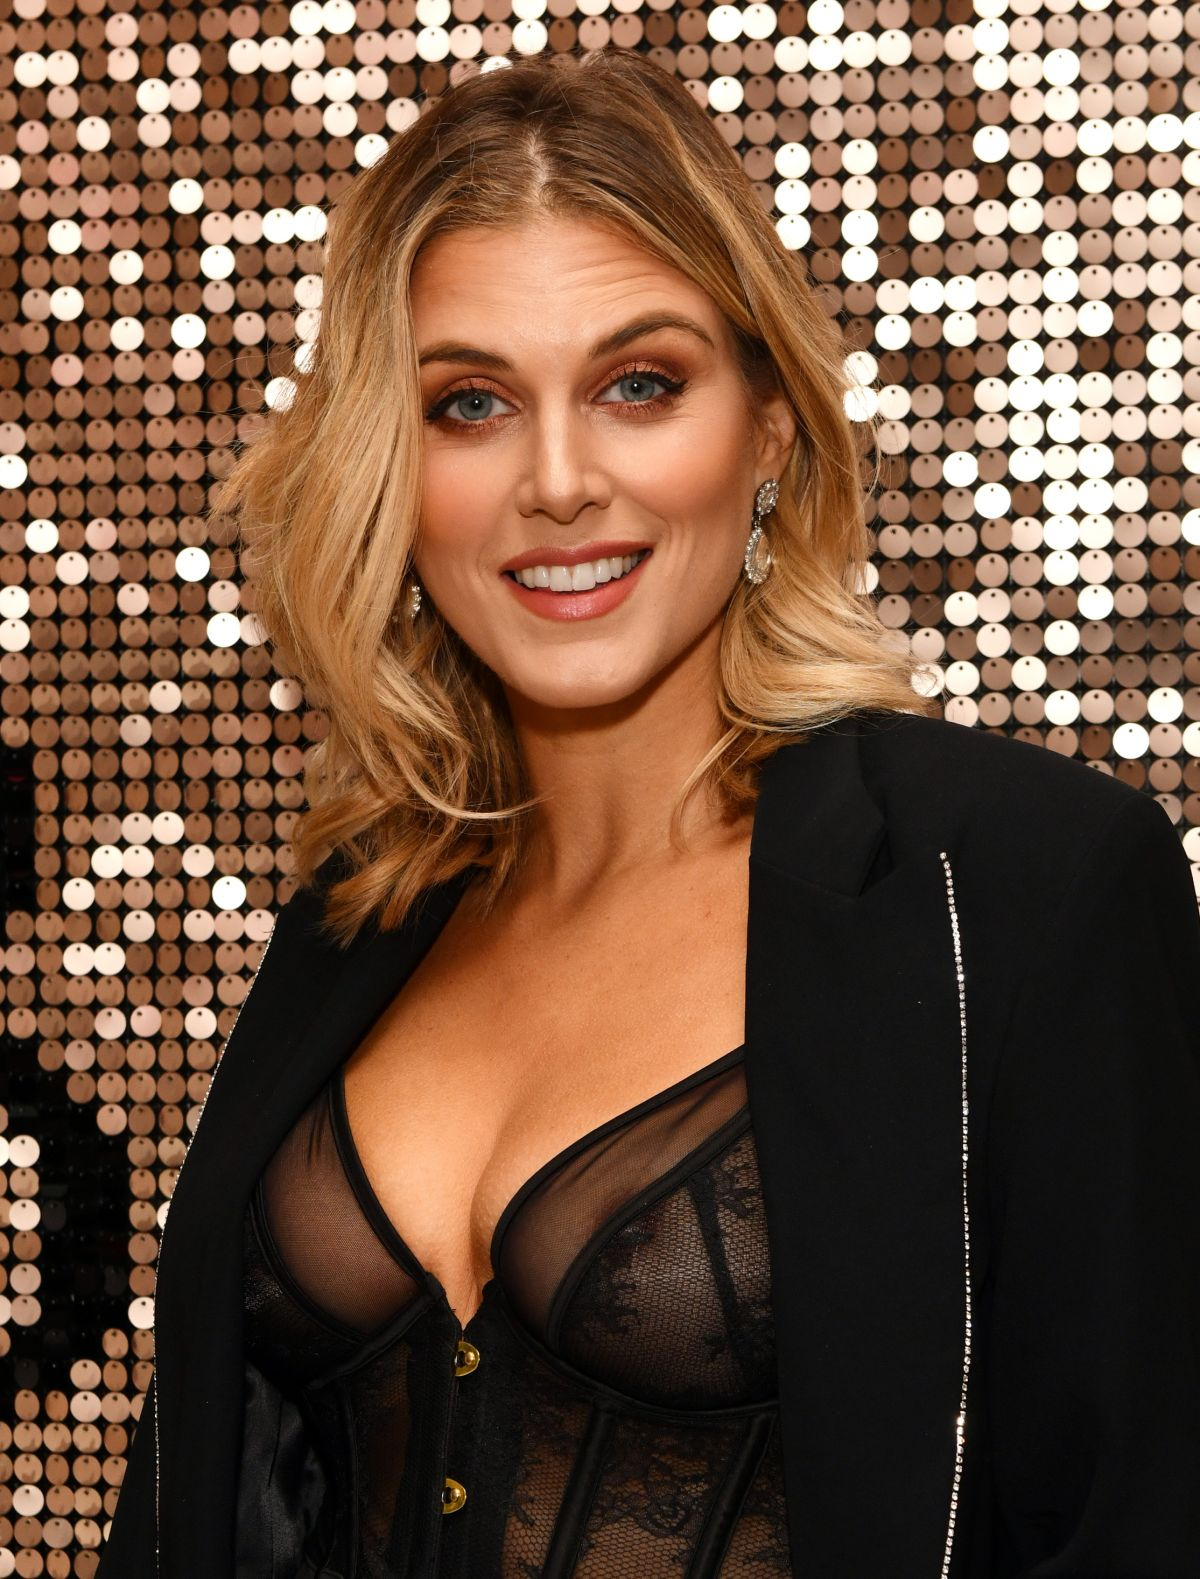 Ashley James leaves little to the imagination as she arrives in sheer basque at the Boux Avenue x Megan McKenna launch